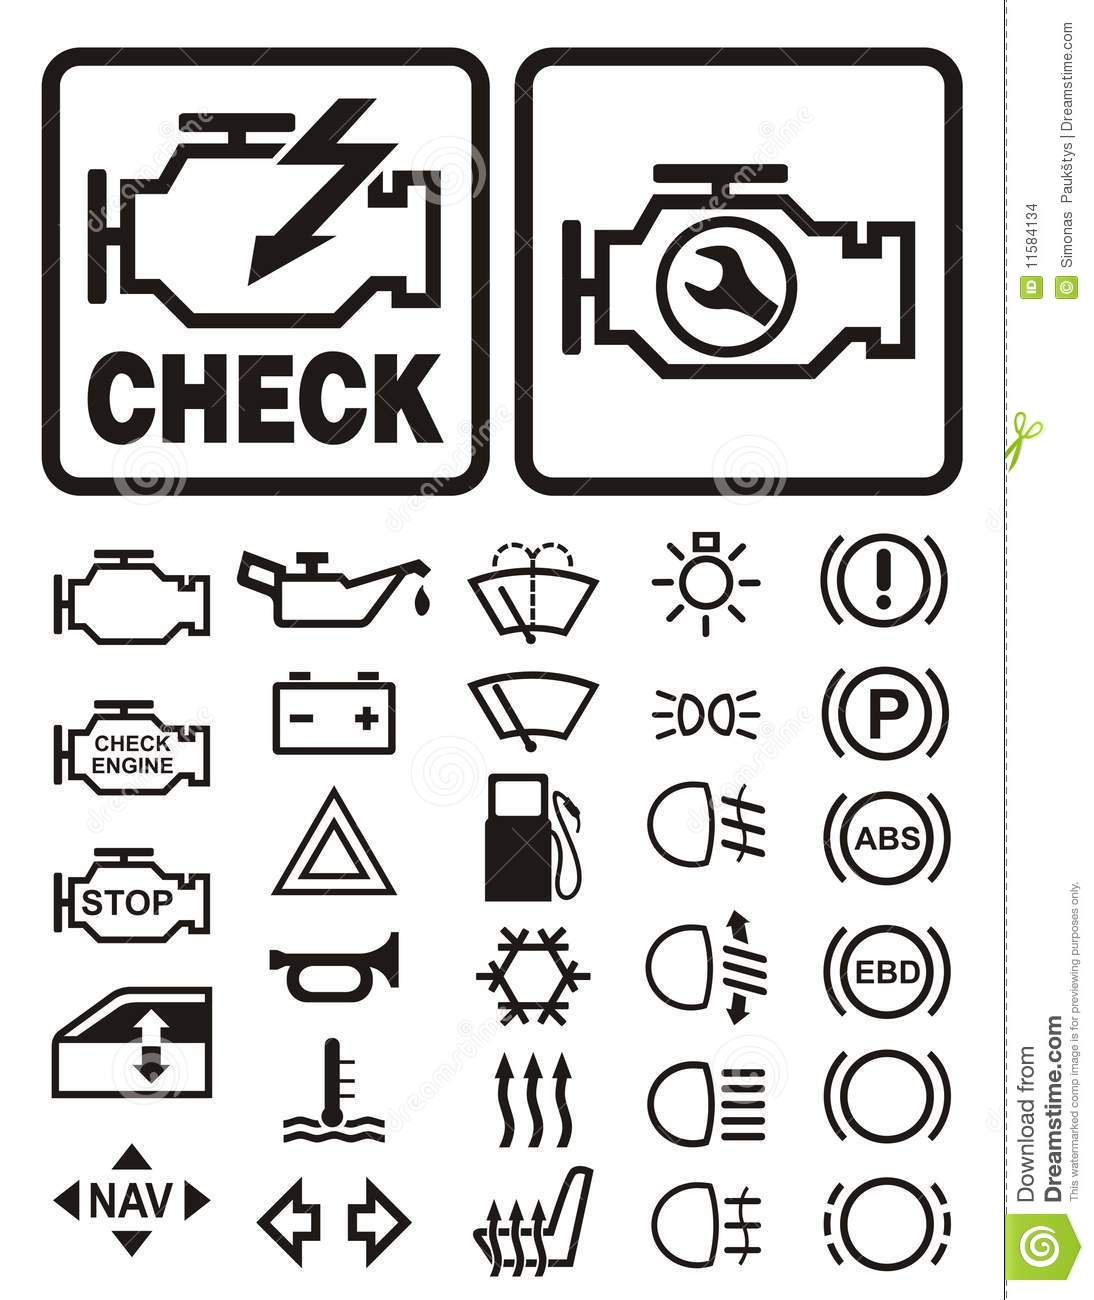 11 car dashboard symbols icons images car dashboard icons car dashboard warning lights symbols buycottarizona Images